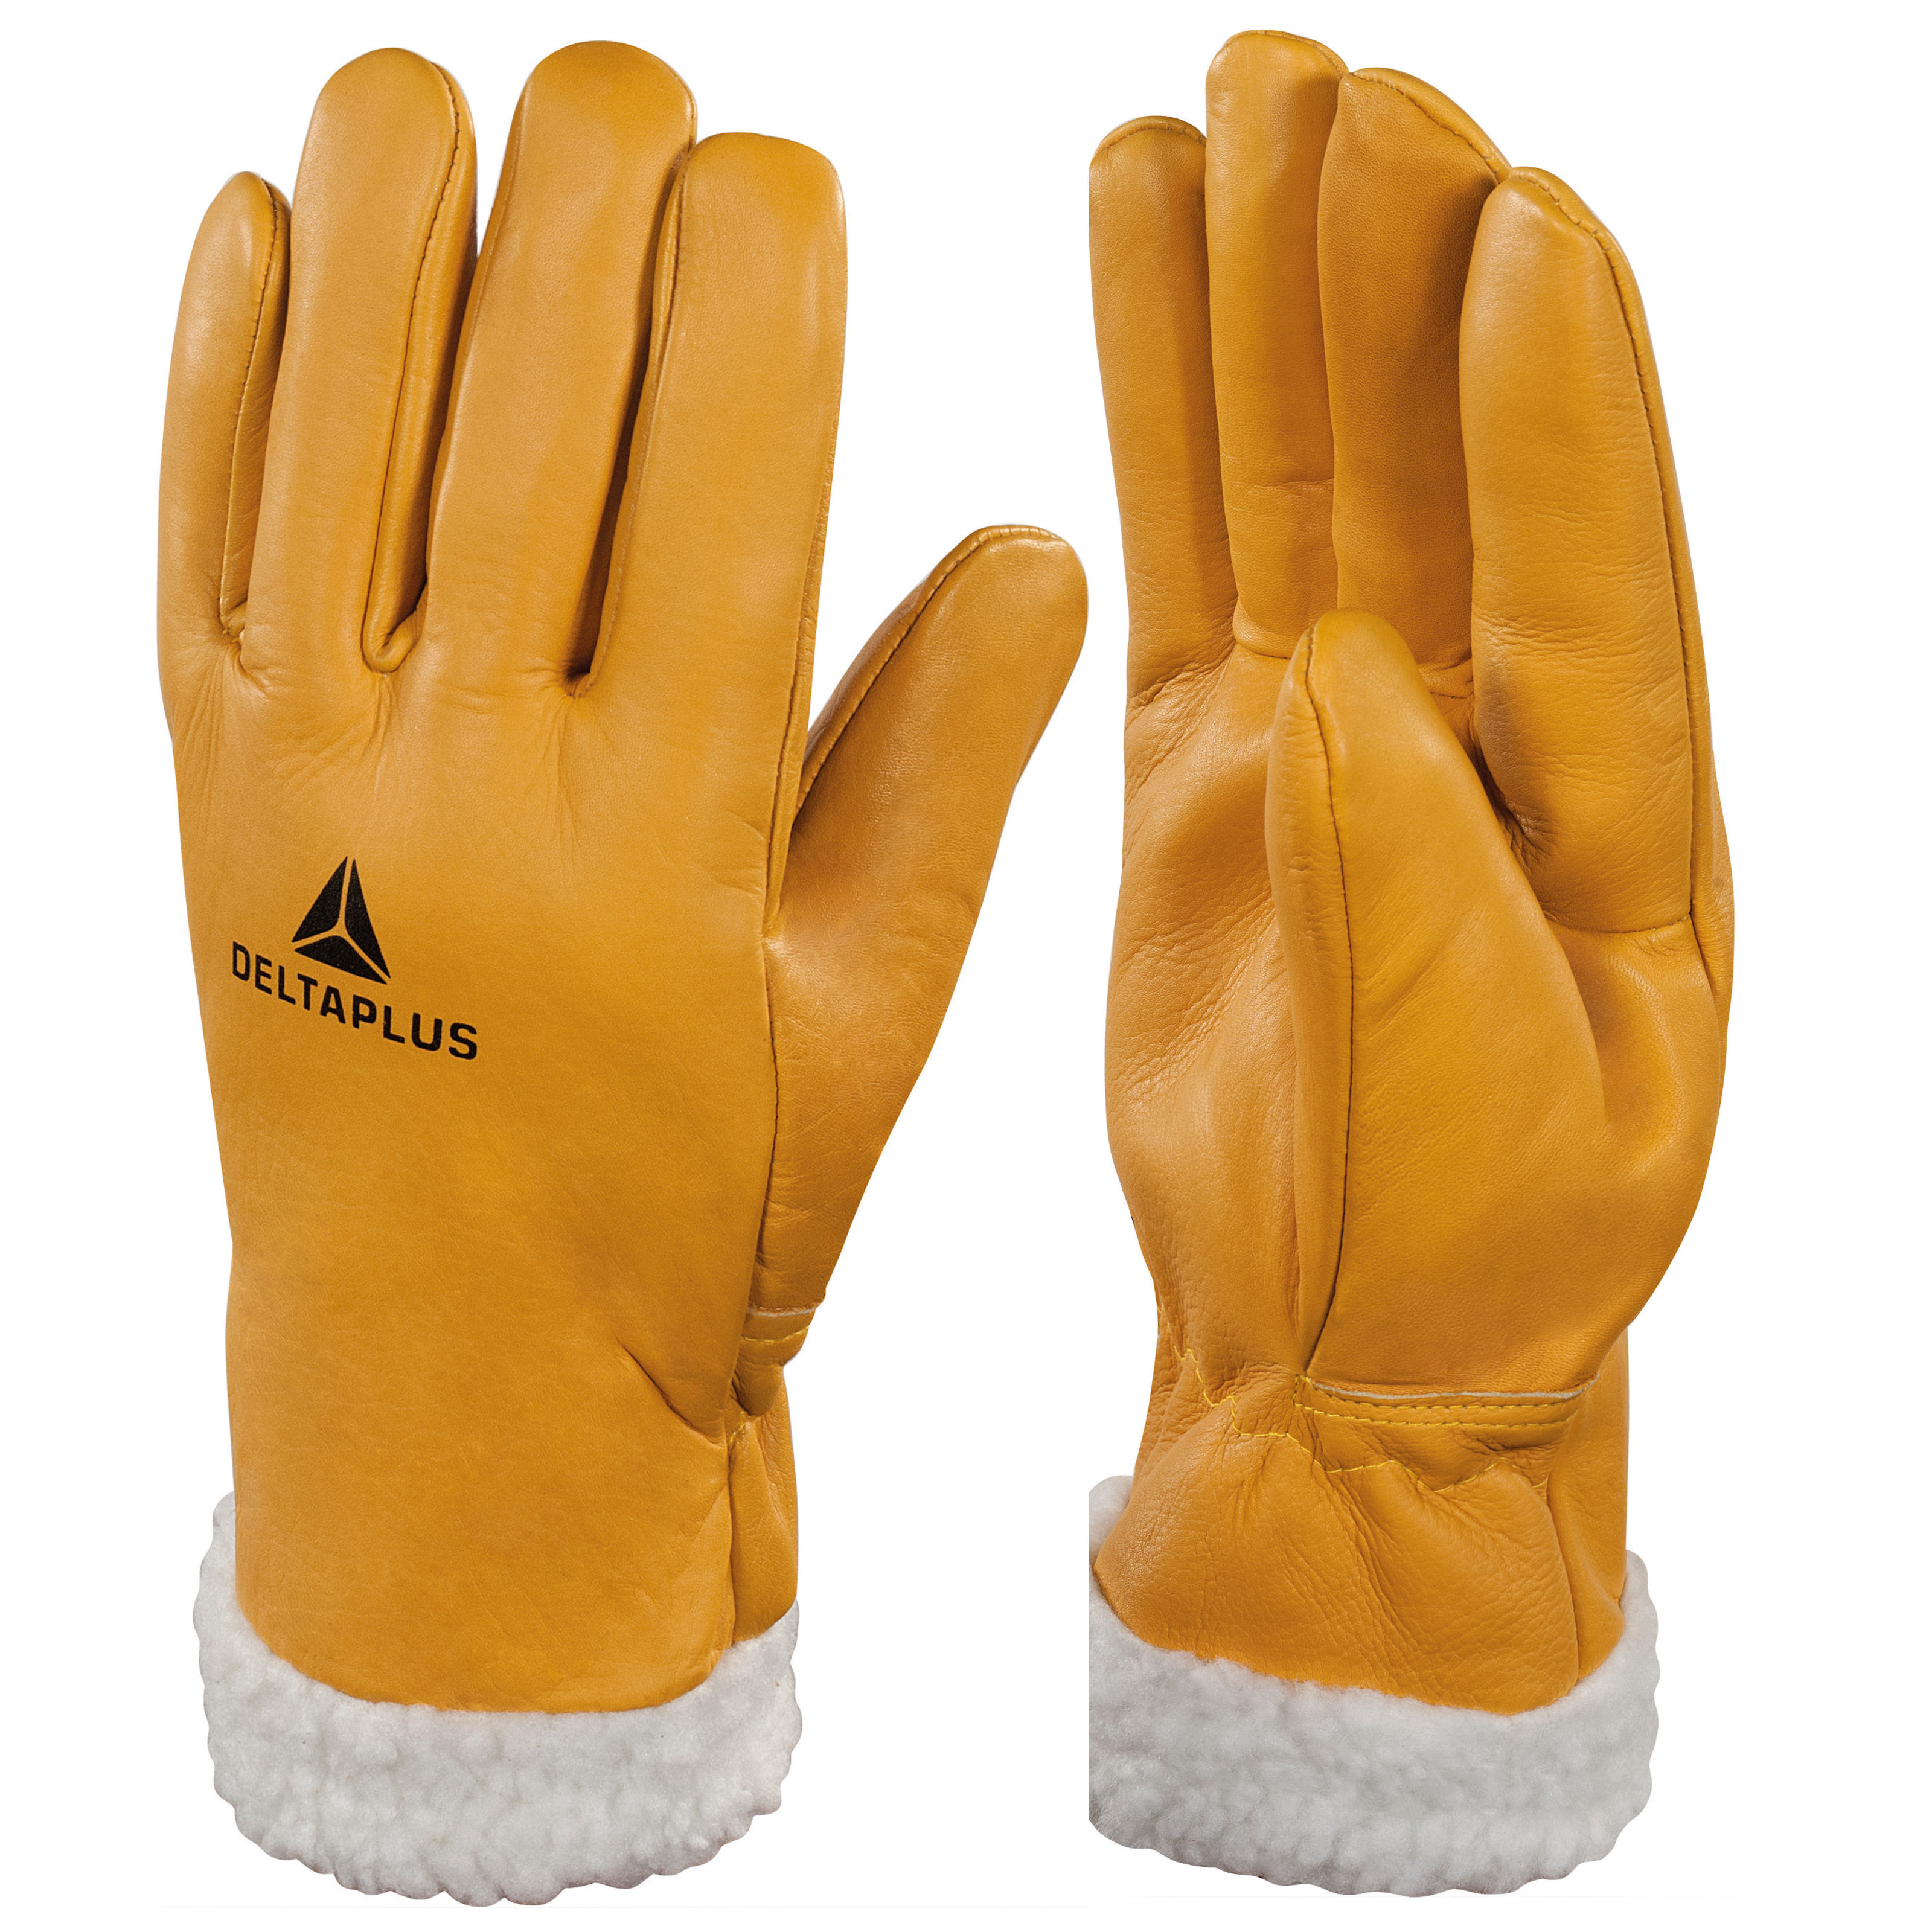 Delta Plus Fur-Lined Leather Thermal Work Gloves